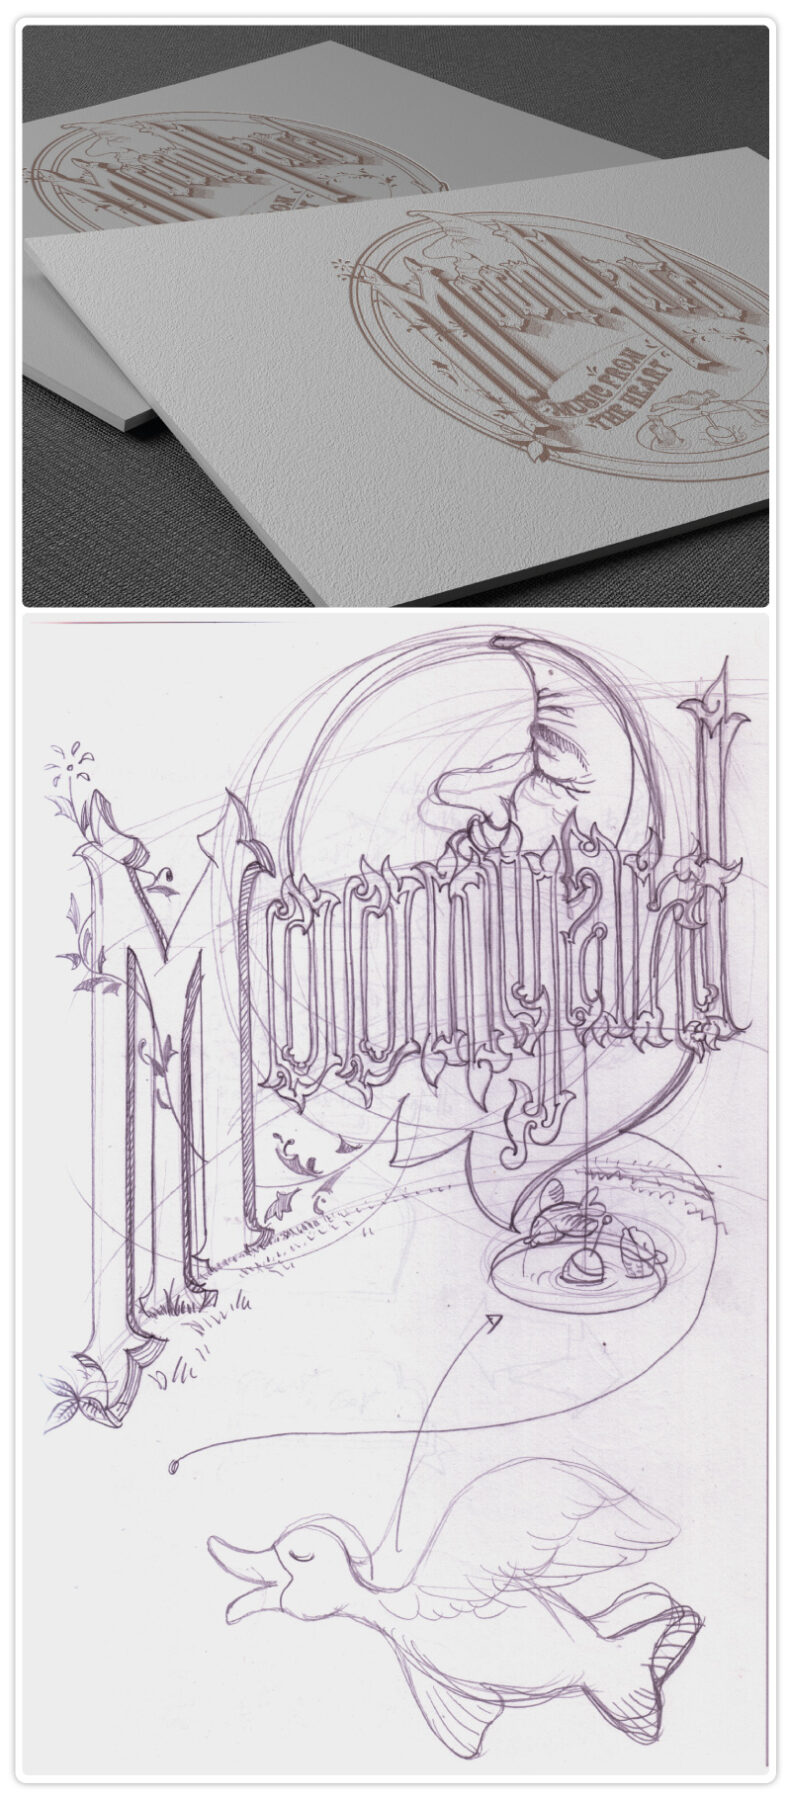 MoonYard logo sketch